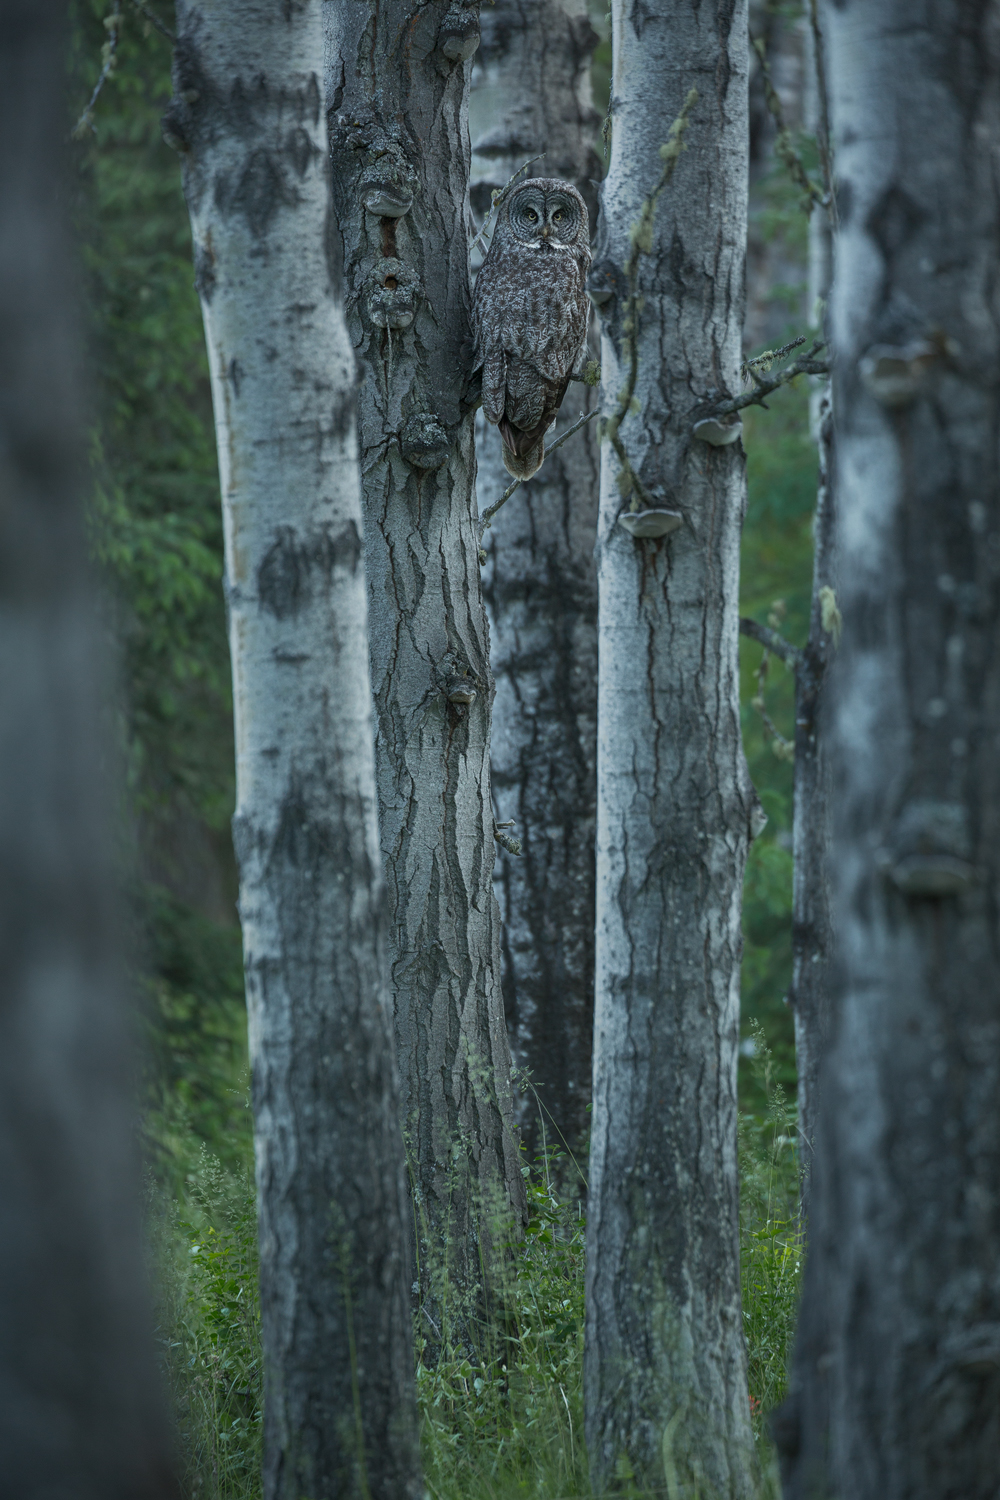 Camouflaged against trembling aspen trunks, a female awaits the return of her mate as dusk sets in over the forest.